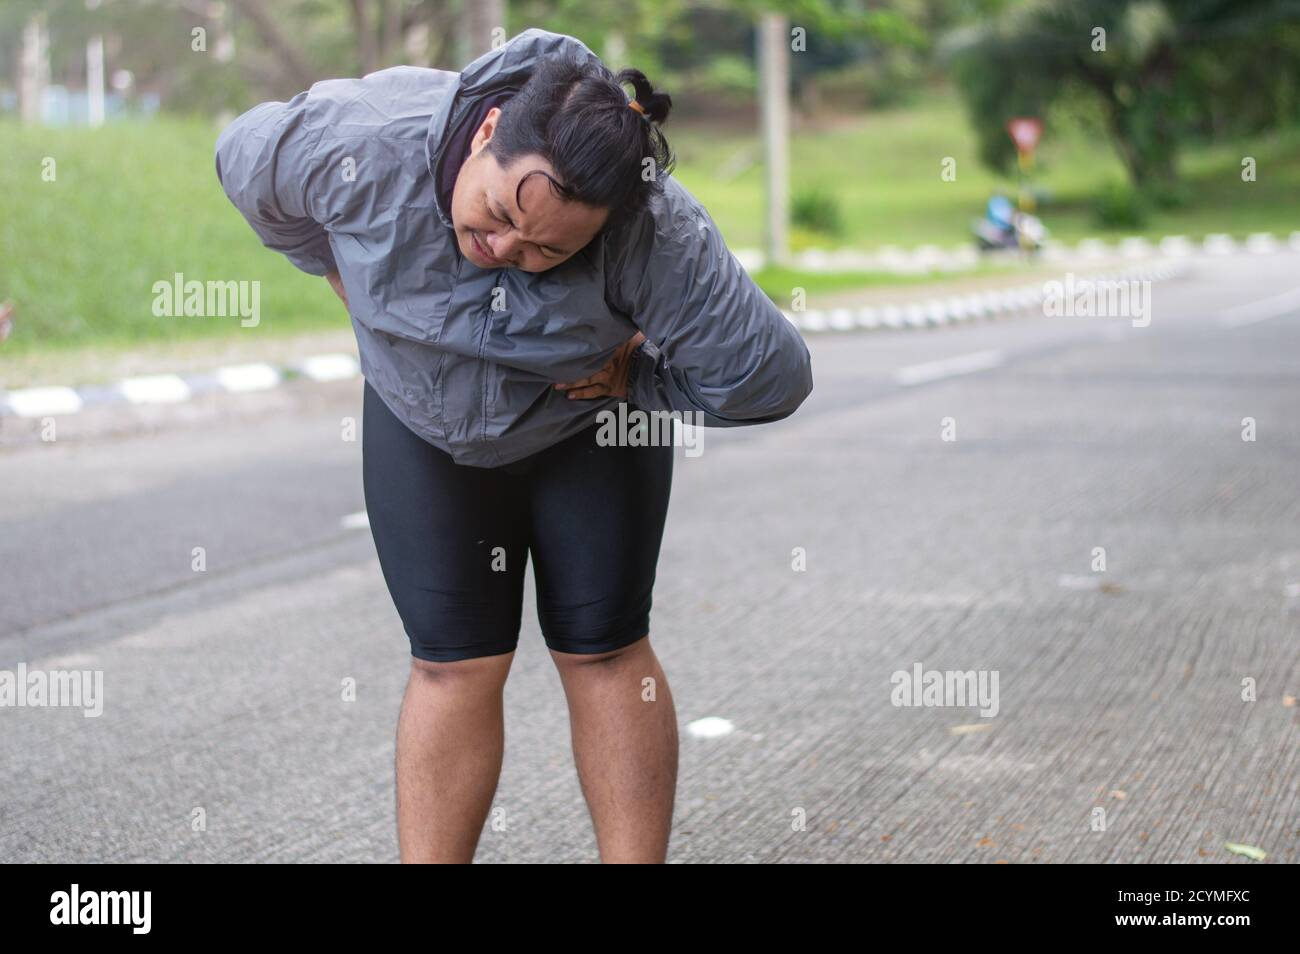 Page 6 Fat Man Running High Resolution Stock Photography And Images Alamy